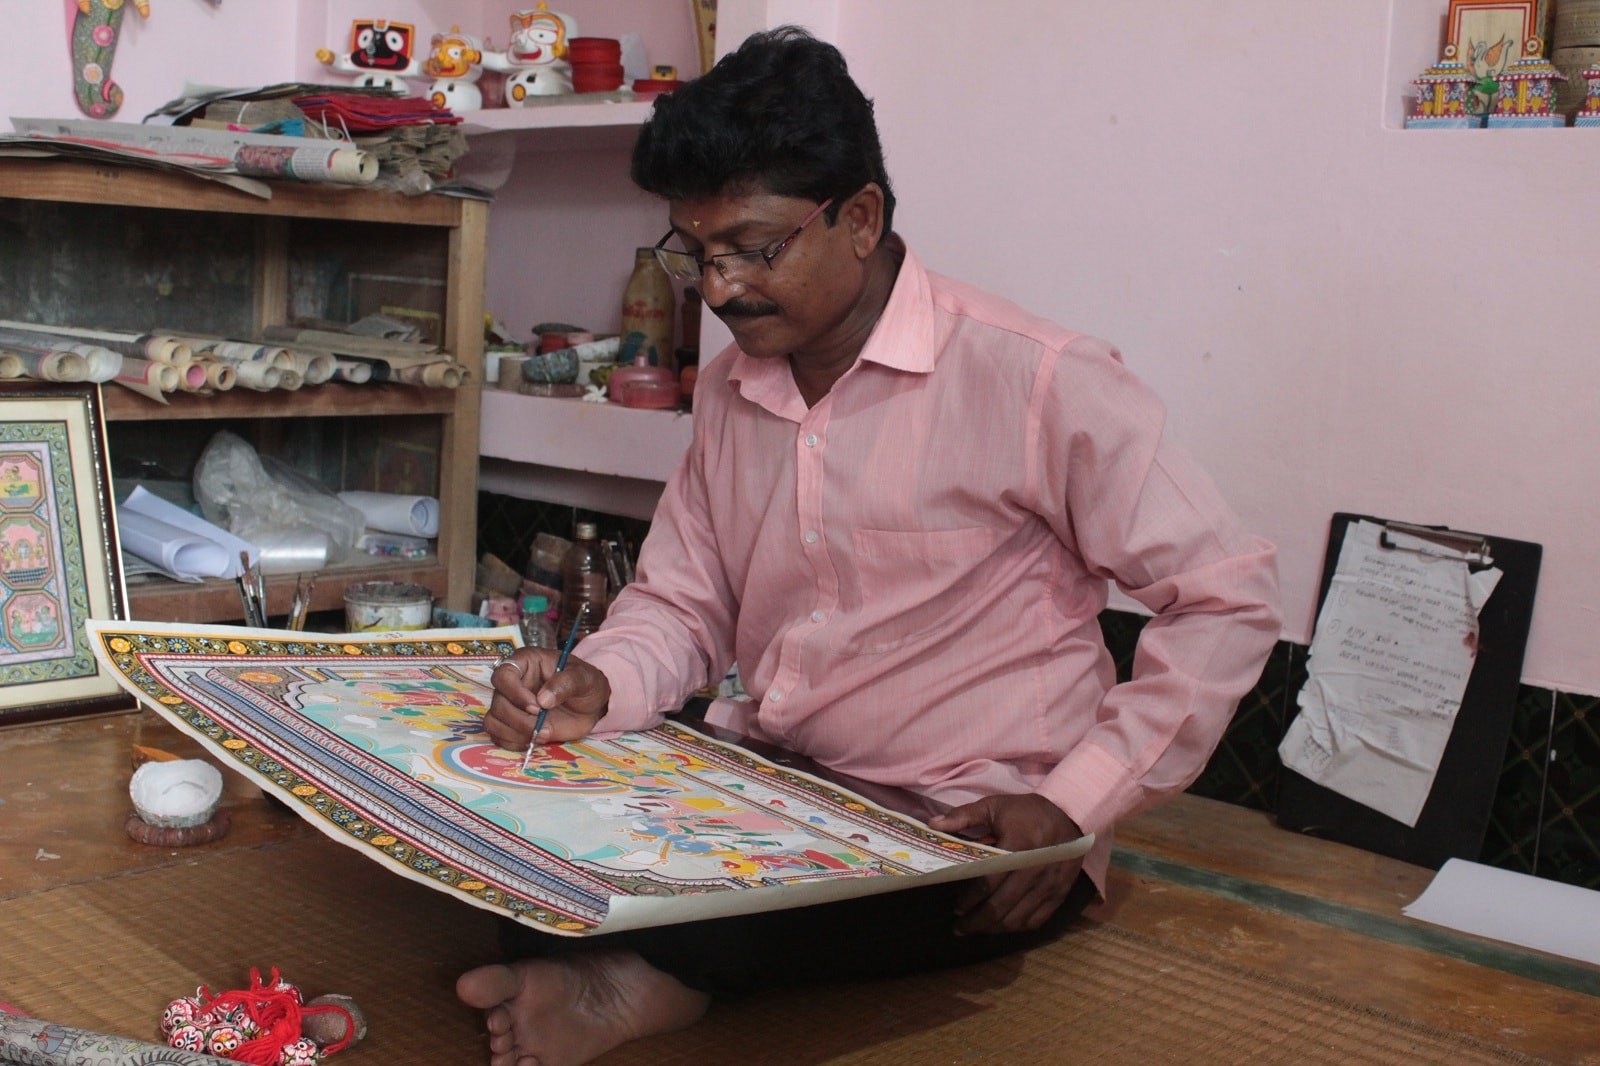 Artist Bhaskar Mahapatra is seen at work. He is painting a scene from the 'Ramayan.'